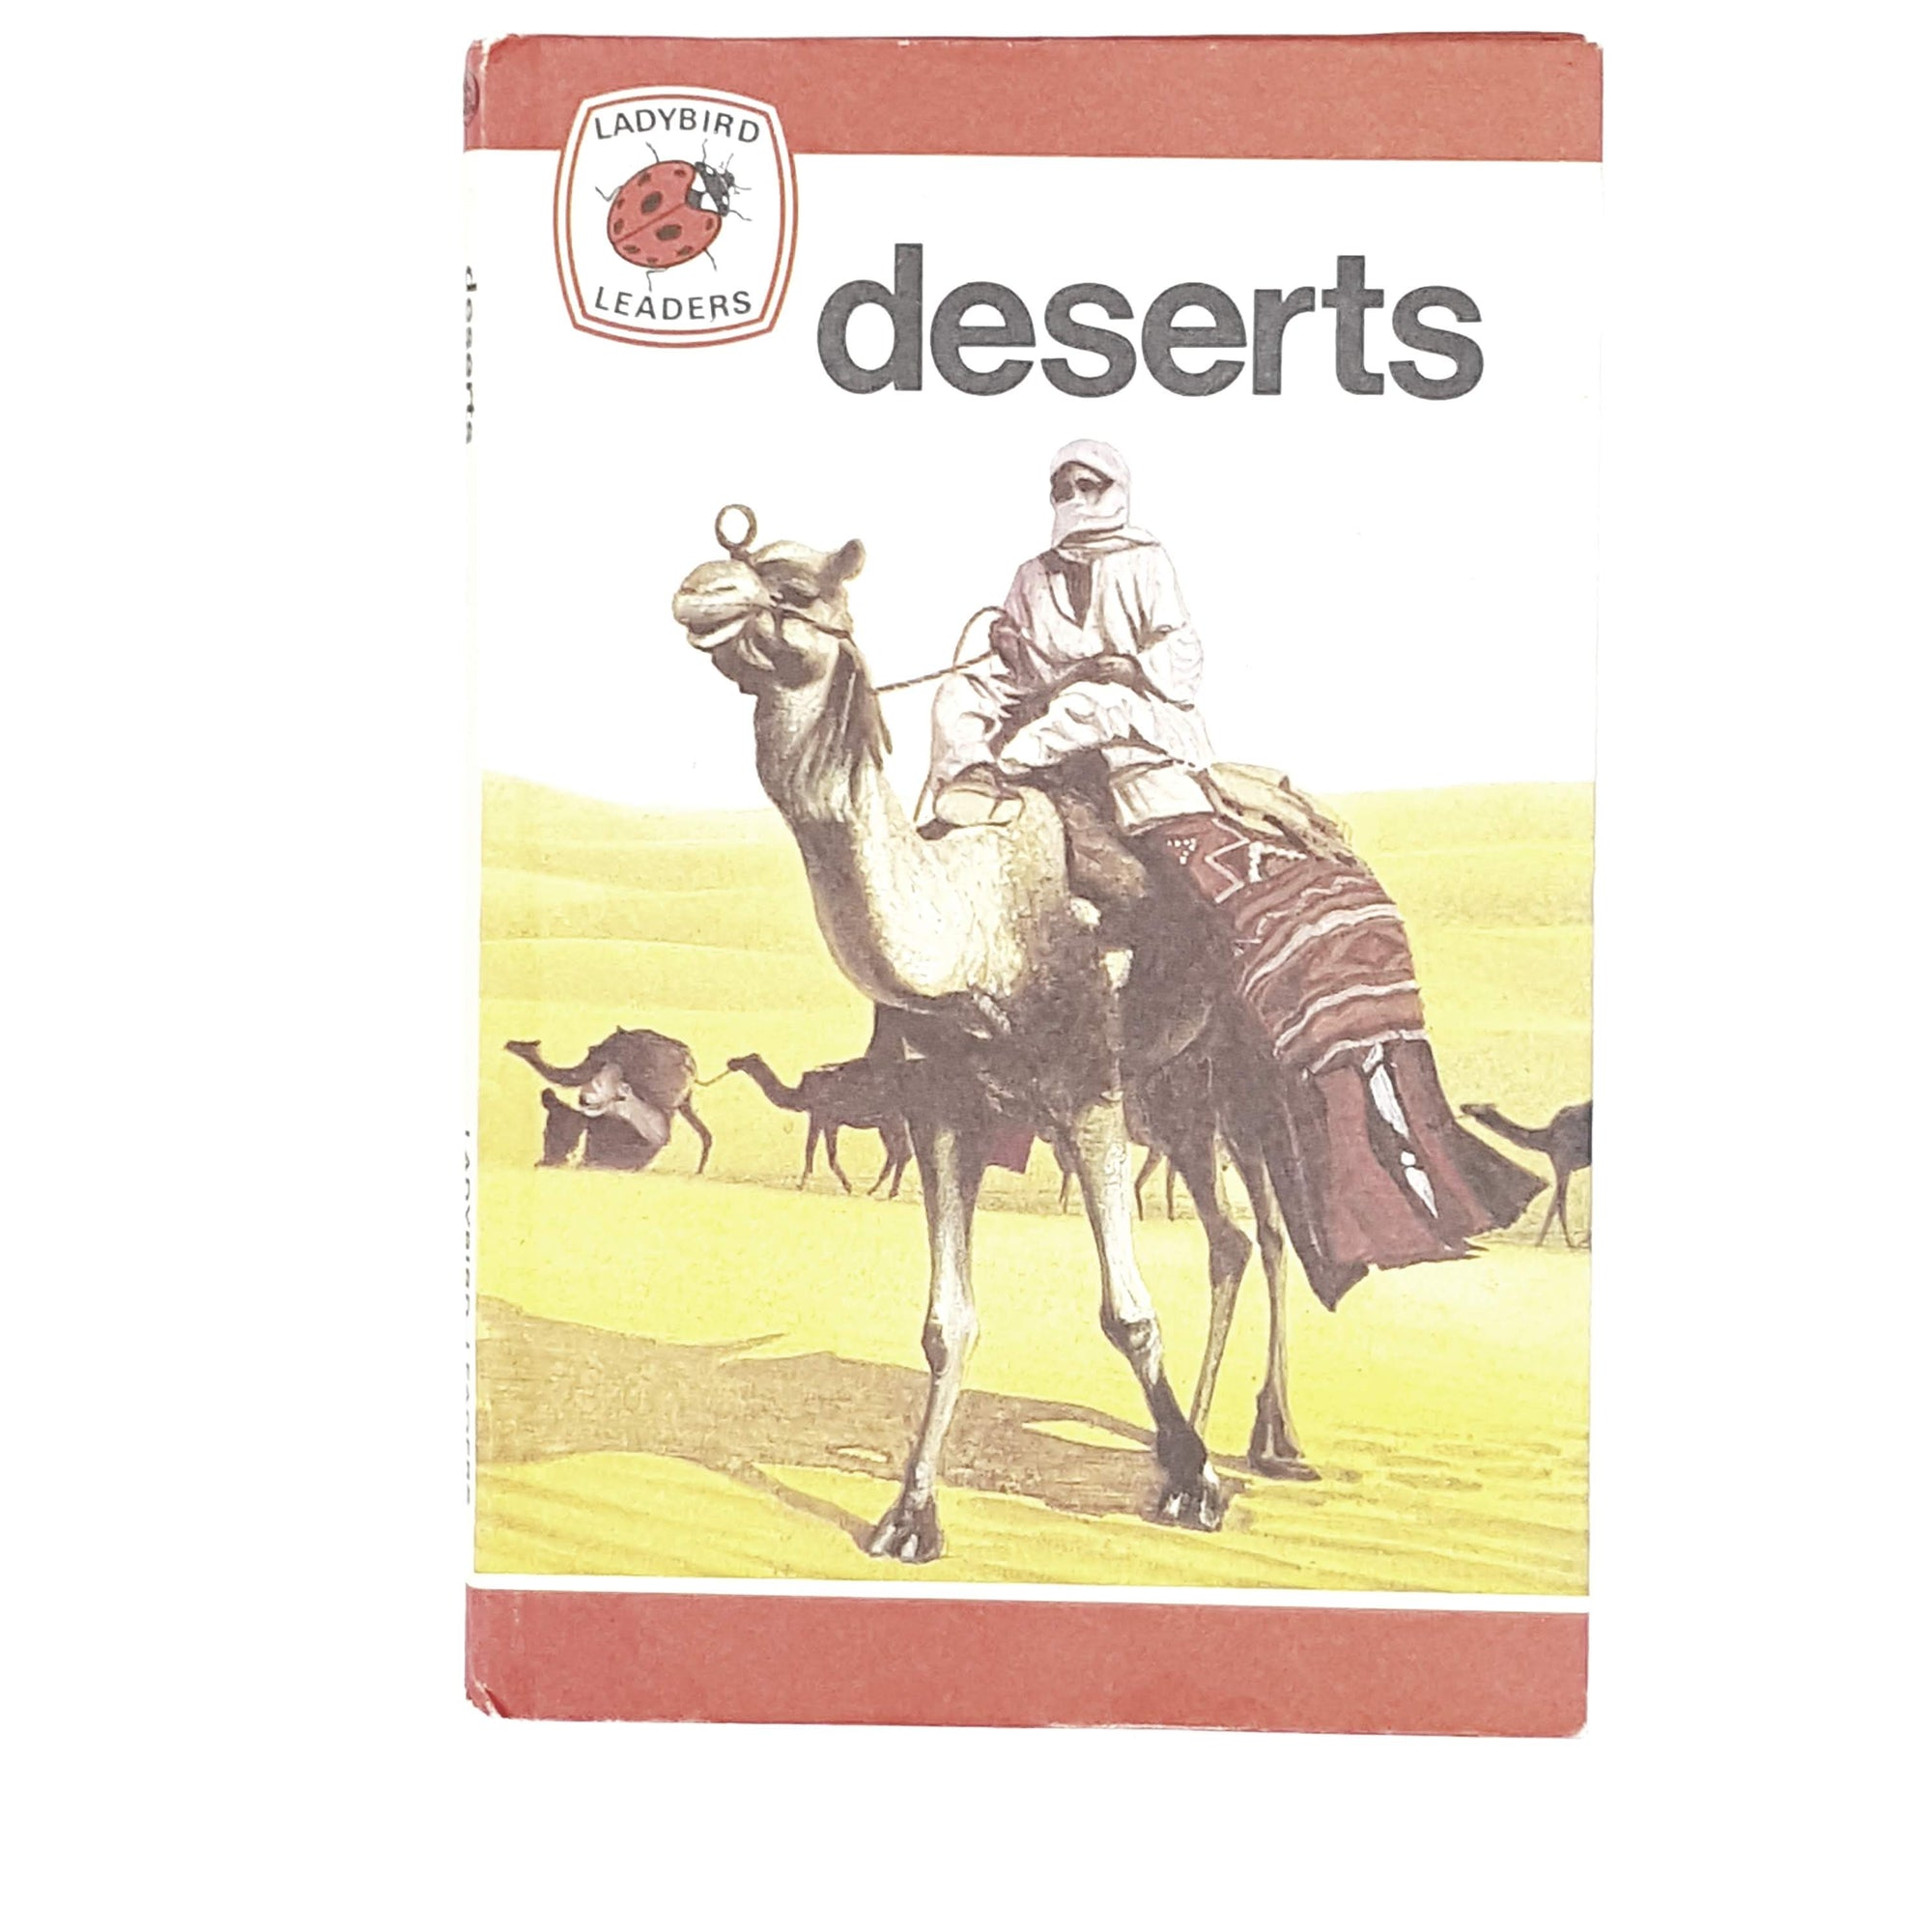 Ladybird Leaders: Deserts 1976